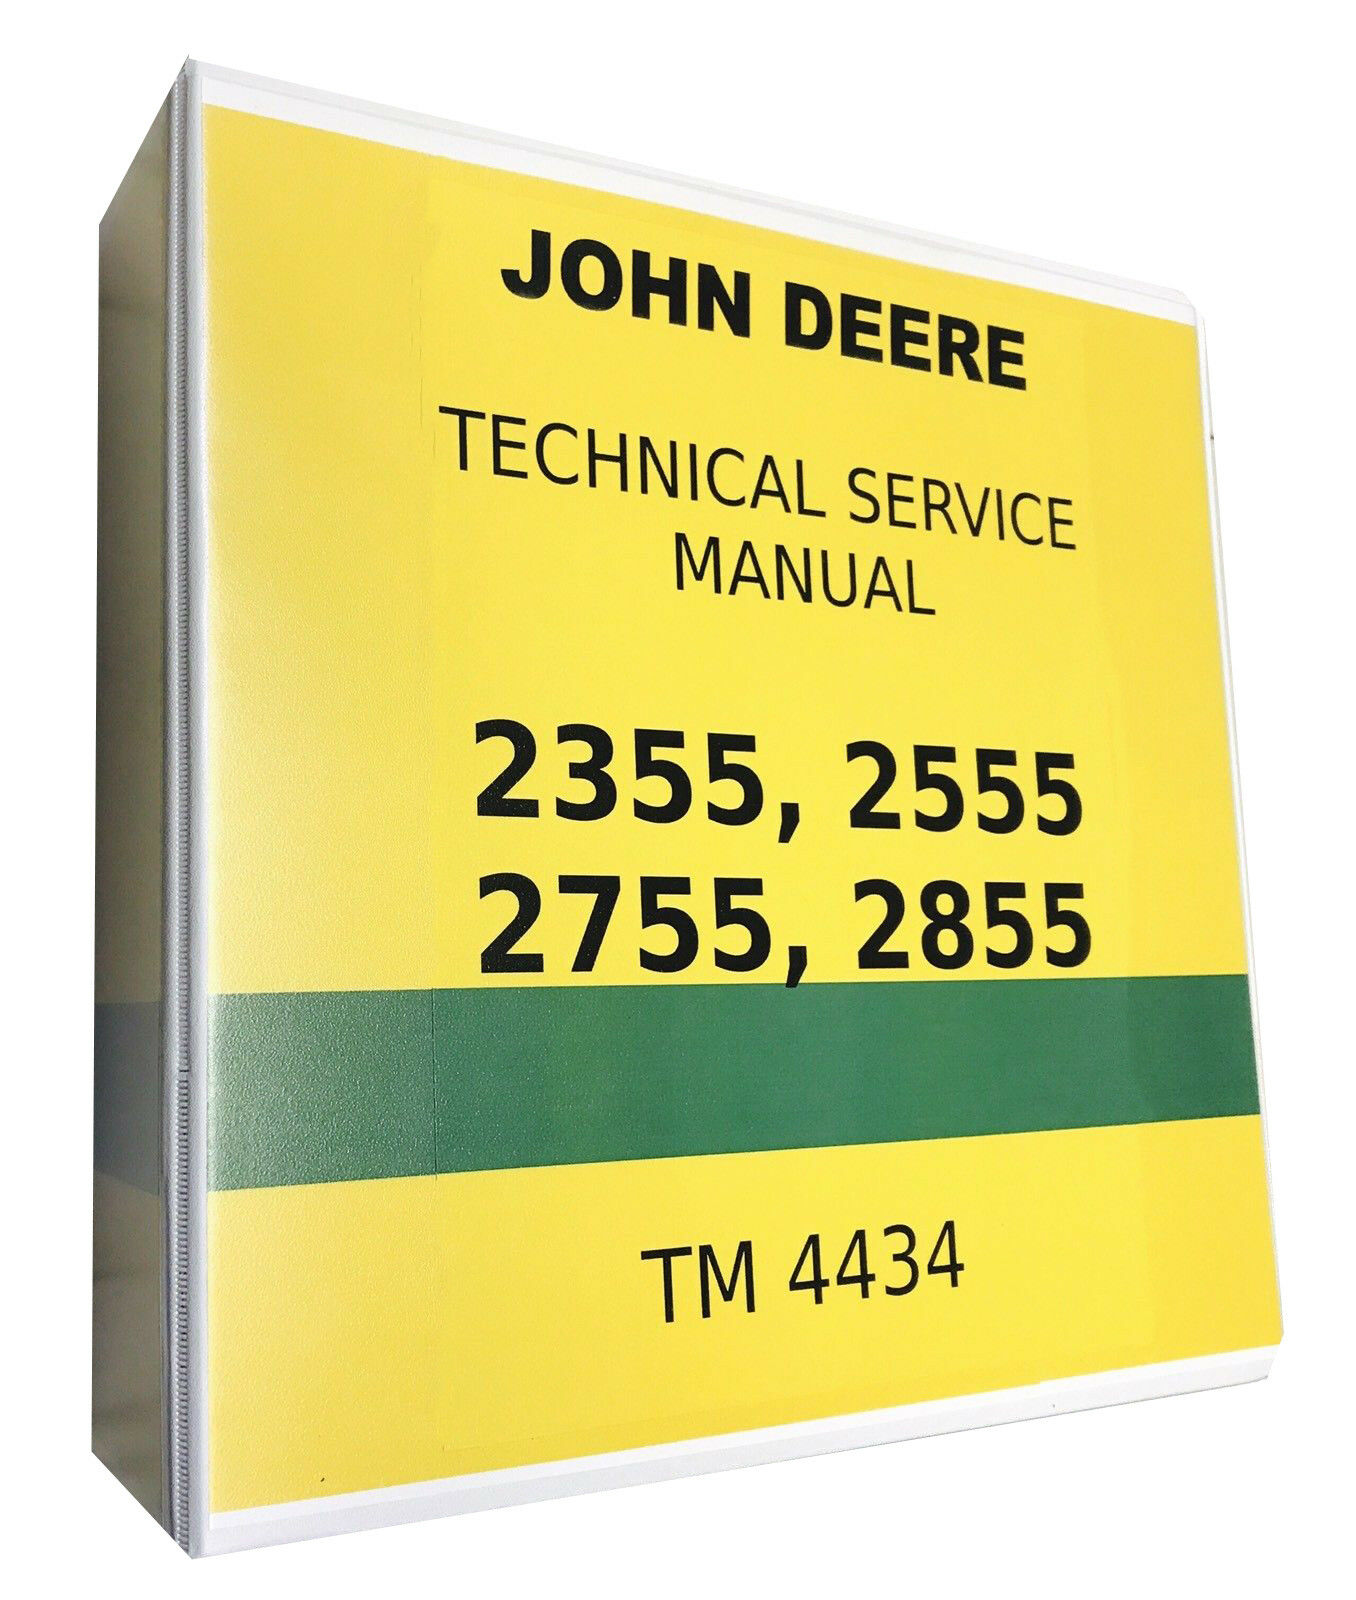 2755 John Deere Technical Service Shop Repair Manual 6387 Picclick 950 Wiring Diagram On 790 1 Of 5only 3 Available